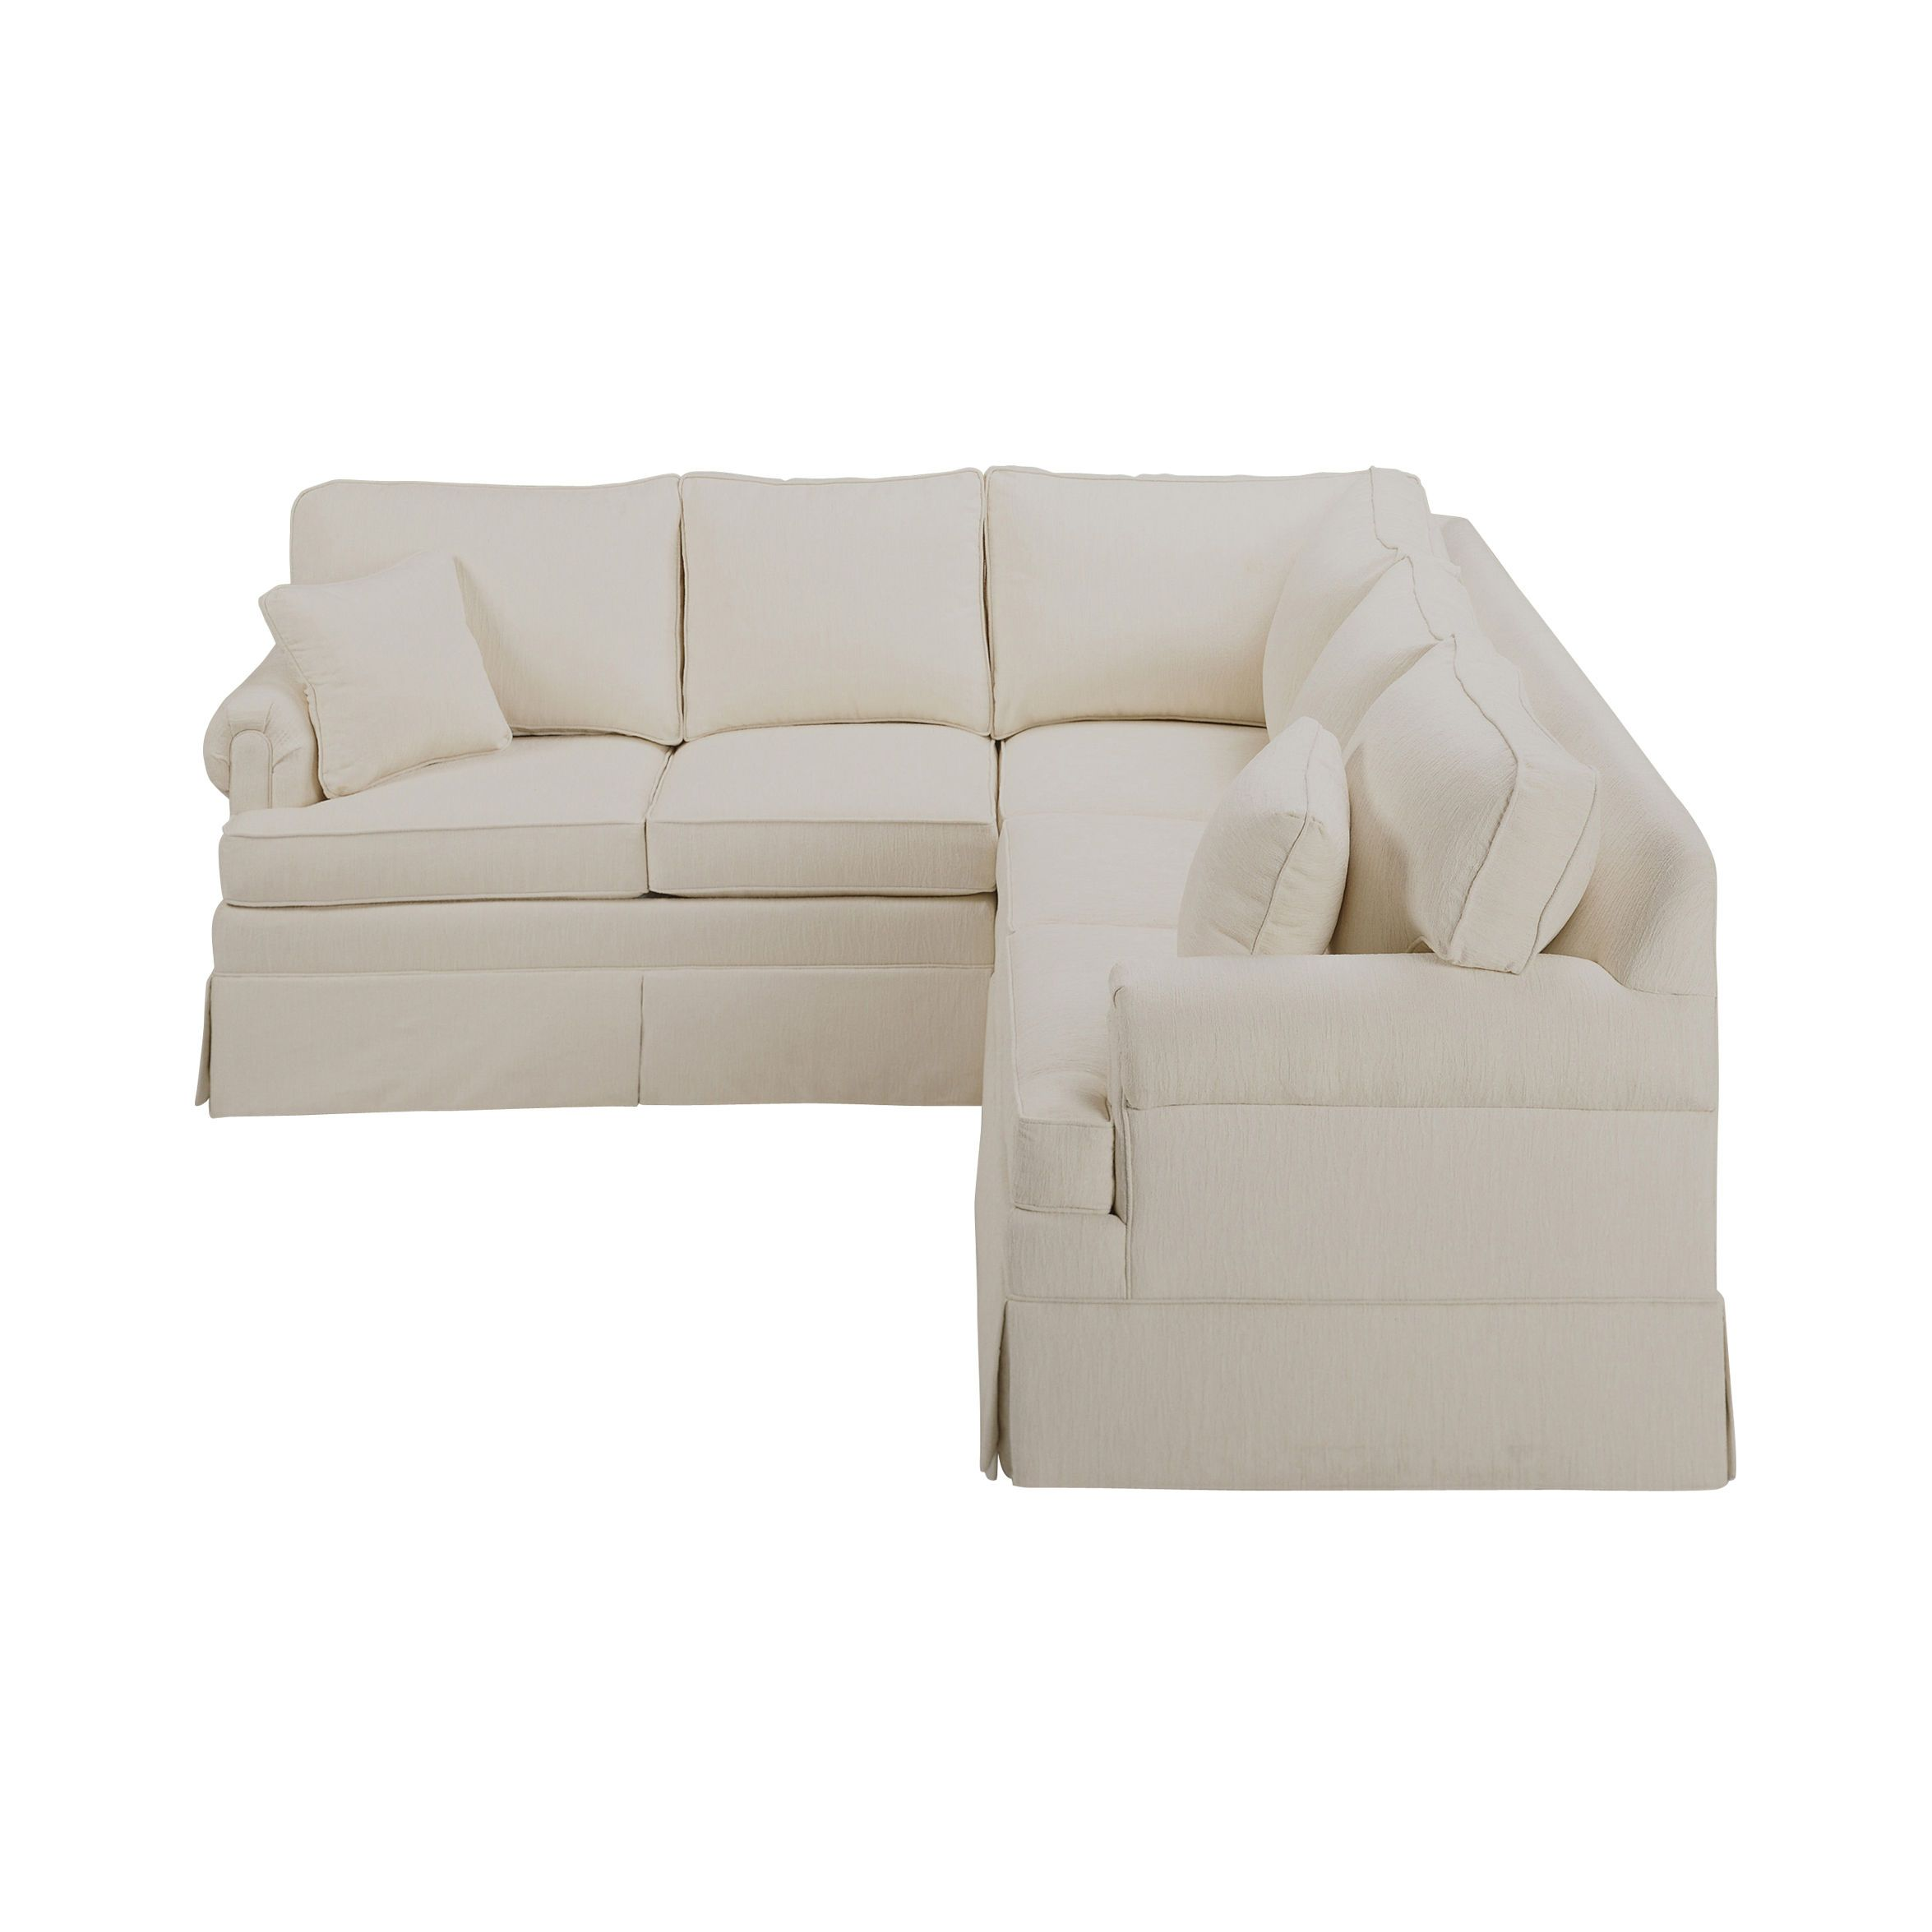 Paramount Sectional - Ethan Allen US. 87 x 87. Good Reviews ...